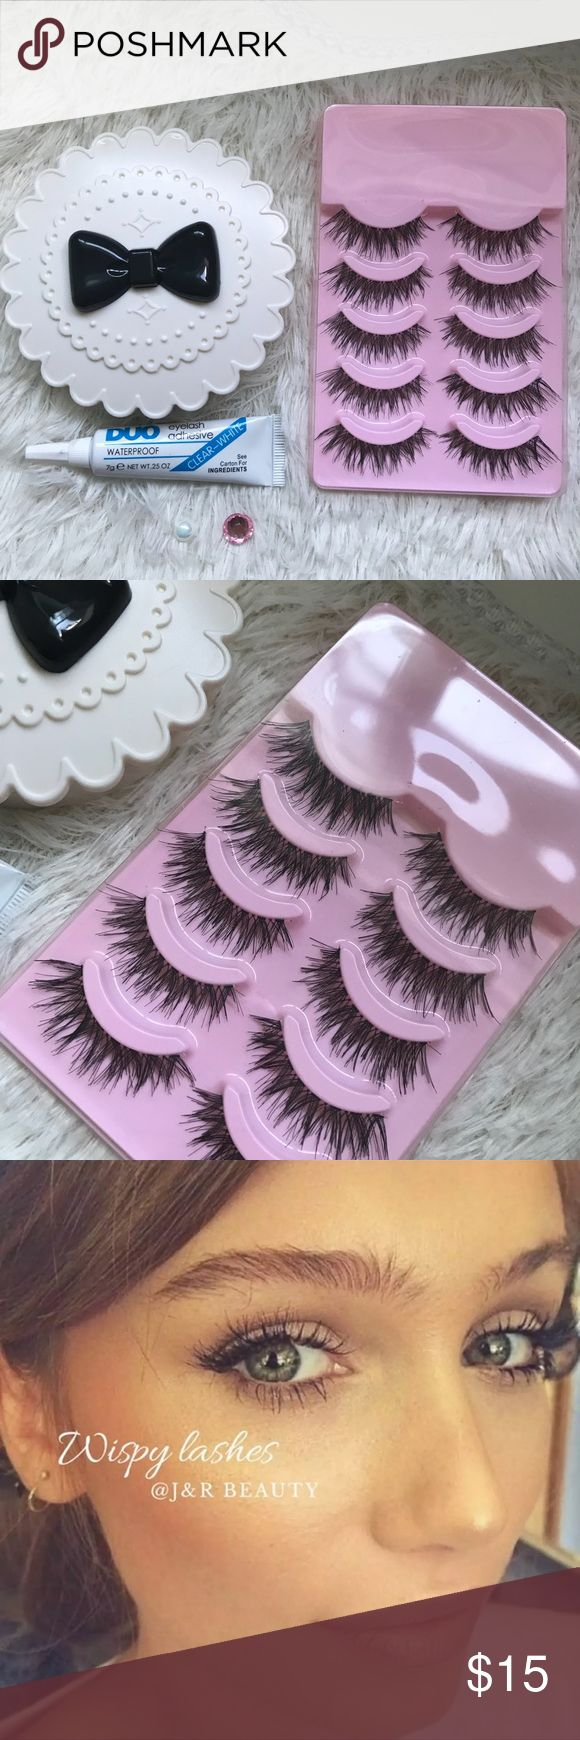 Wispy Eyelashes + Eyelash Case + Duo Glue All brand new included  ⭐️5 Pairs wispy Lashes  ⭐️Duo Glue  ⭐️Eyelash Case  ( all colors are available)   # tags  Iconic, mink, red cherry eyelashes, house of lashes, doll, kawaii, case, full, natural,  Koko, Ardell, wispies, Demi , makeup, Iconic, mink, red cherry eyelashes, house of lashes, doll, kawaii, case, full, natural,  Koko, Ardell, wispies, Demi , makeup, mascara, eyelash applicator, Mykonos Mink , Lashes , wispy ,eyelash case, mink lashes…